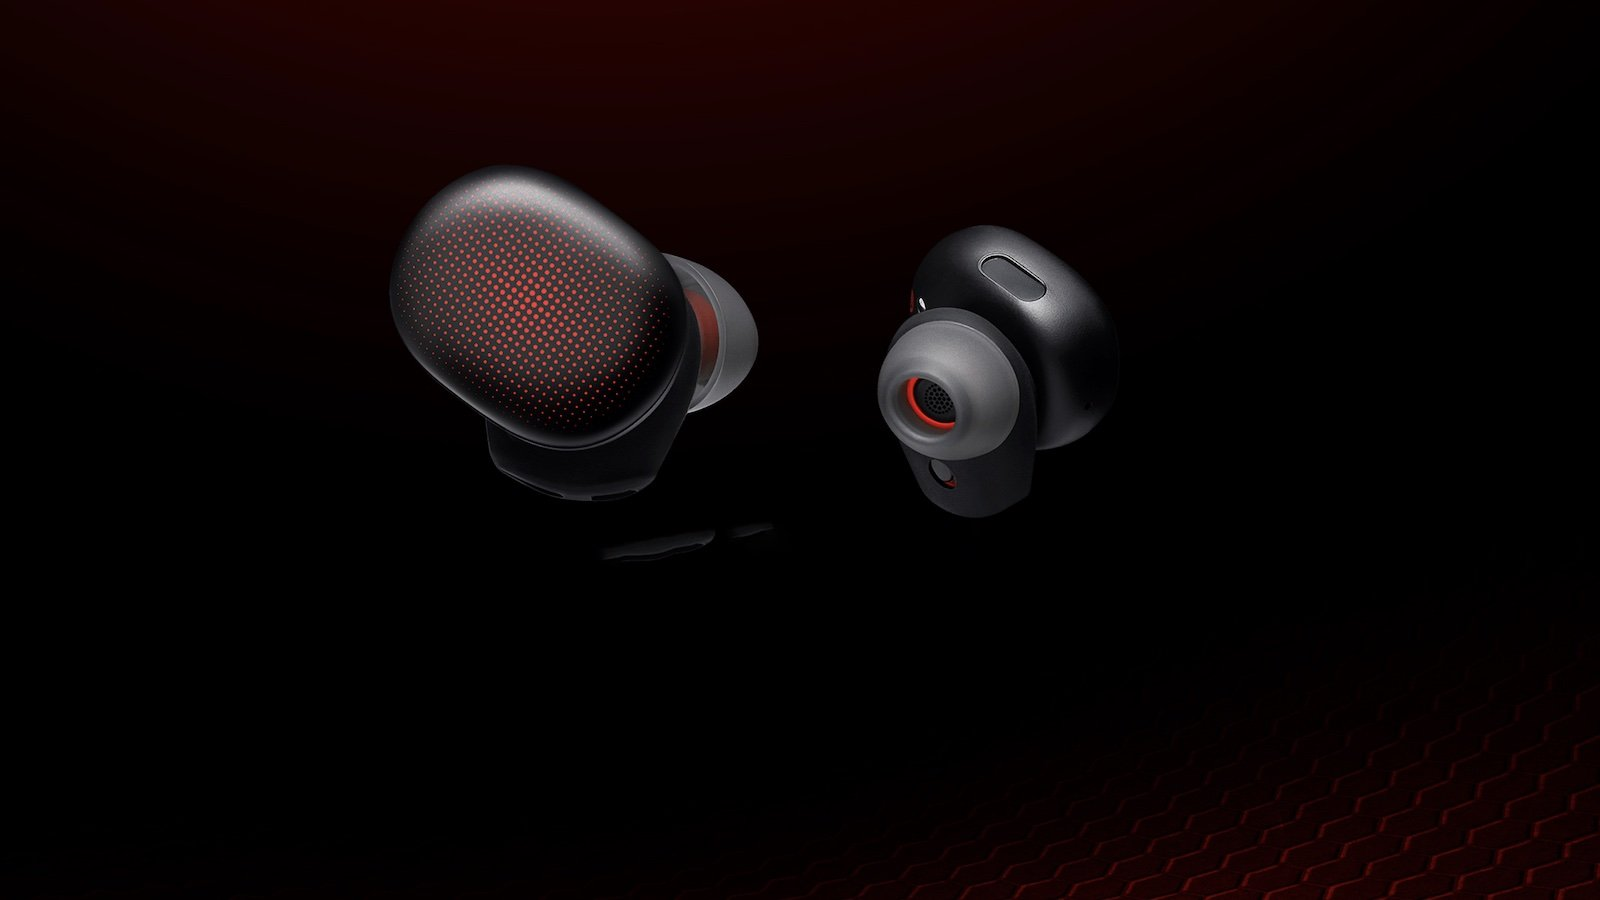 Amazfit PowerBuds fitness earbuds monitor your heart rate during for safer workouts